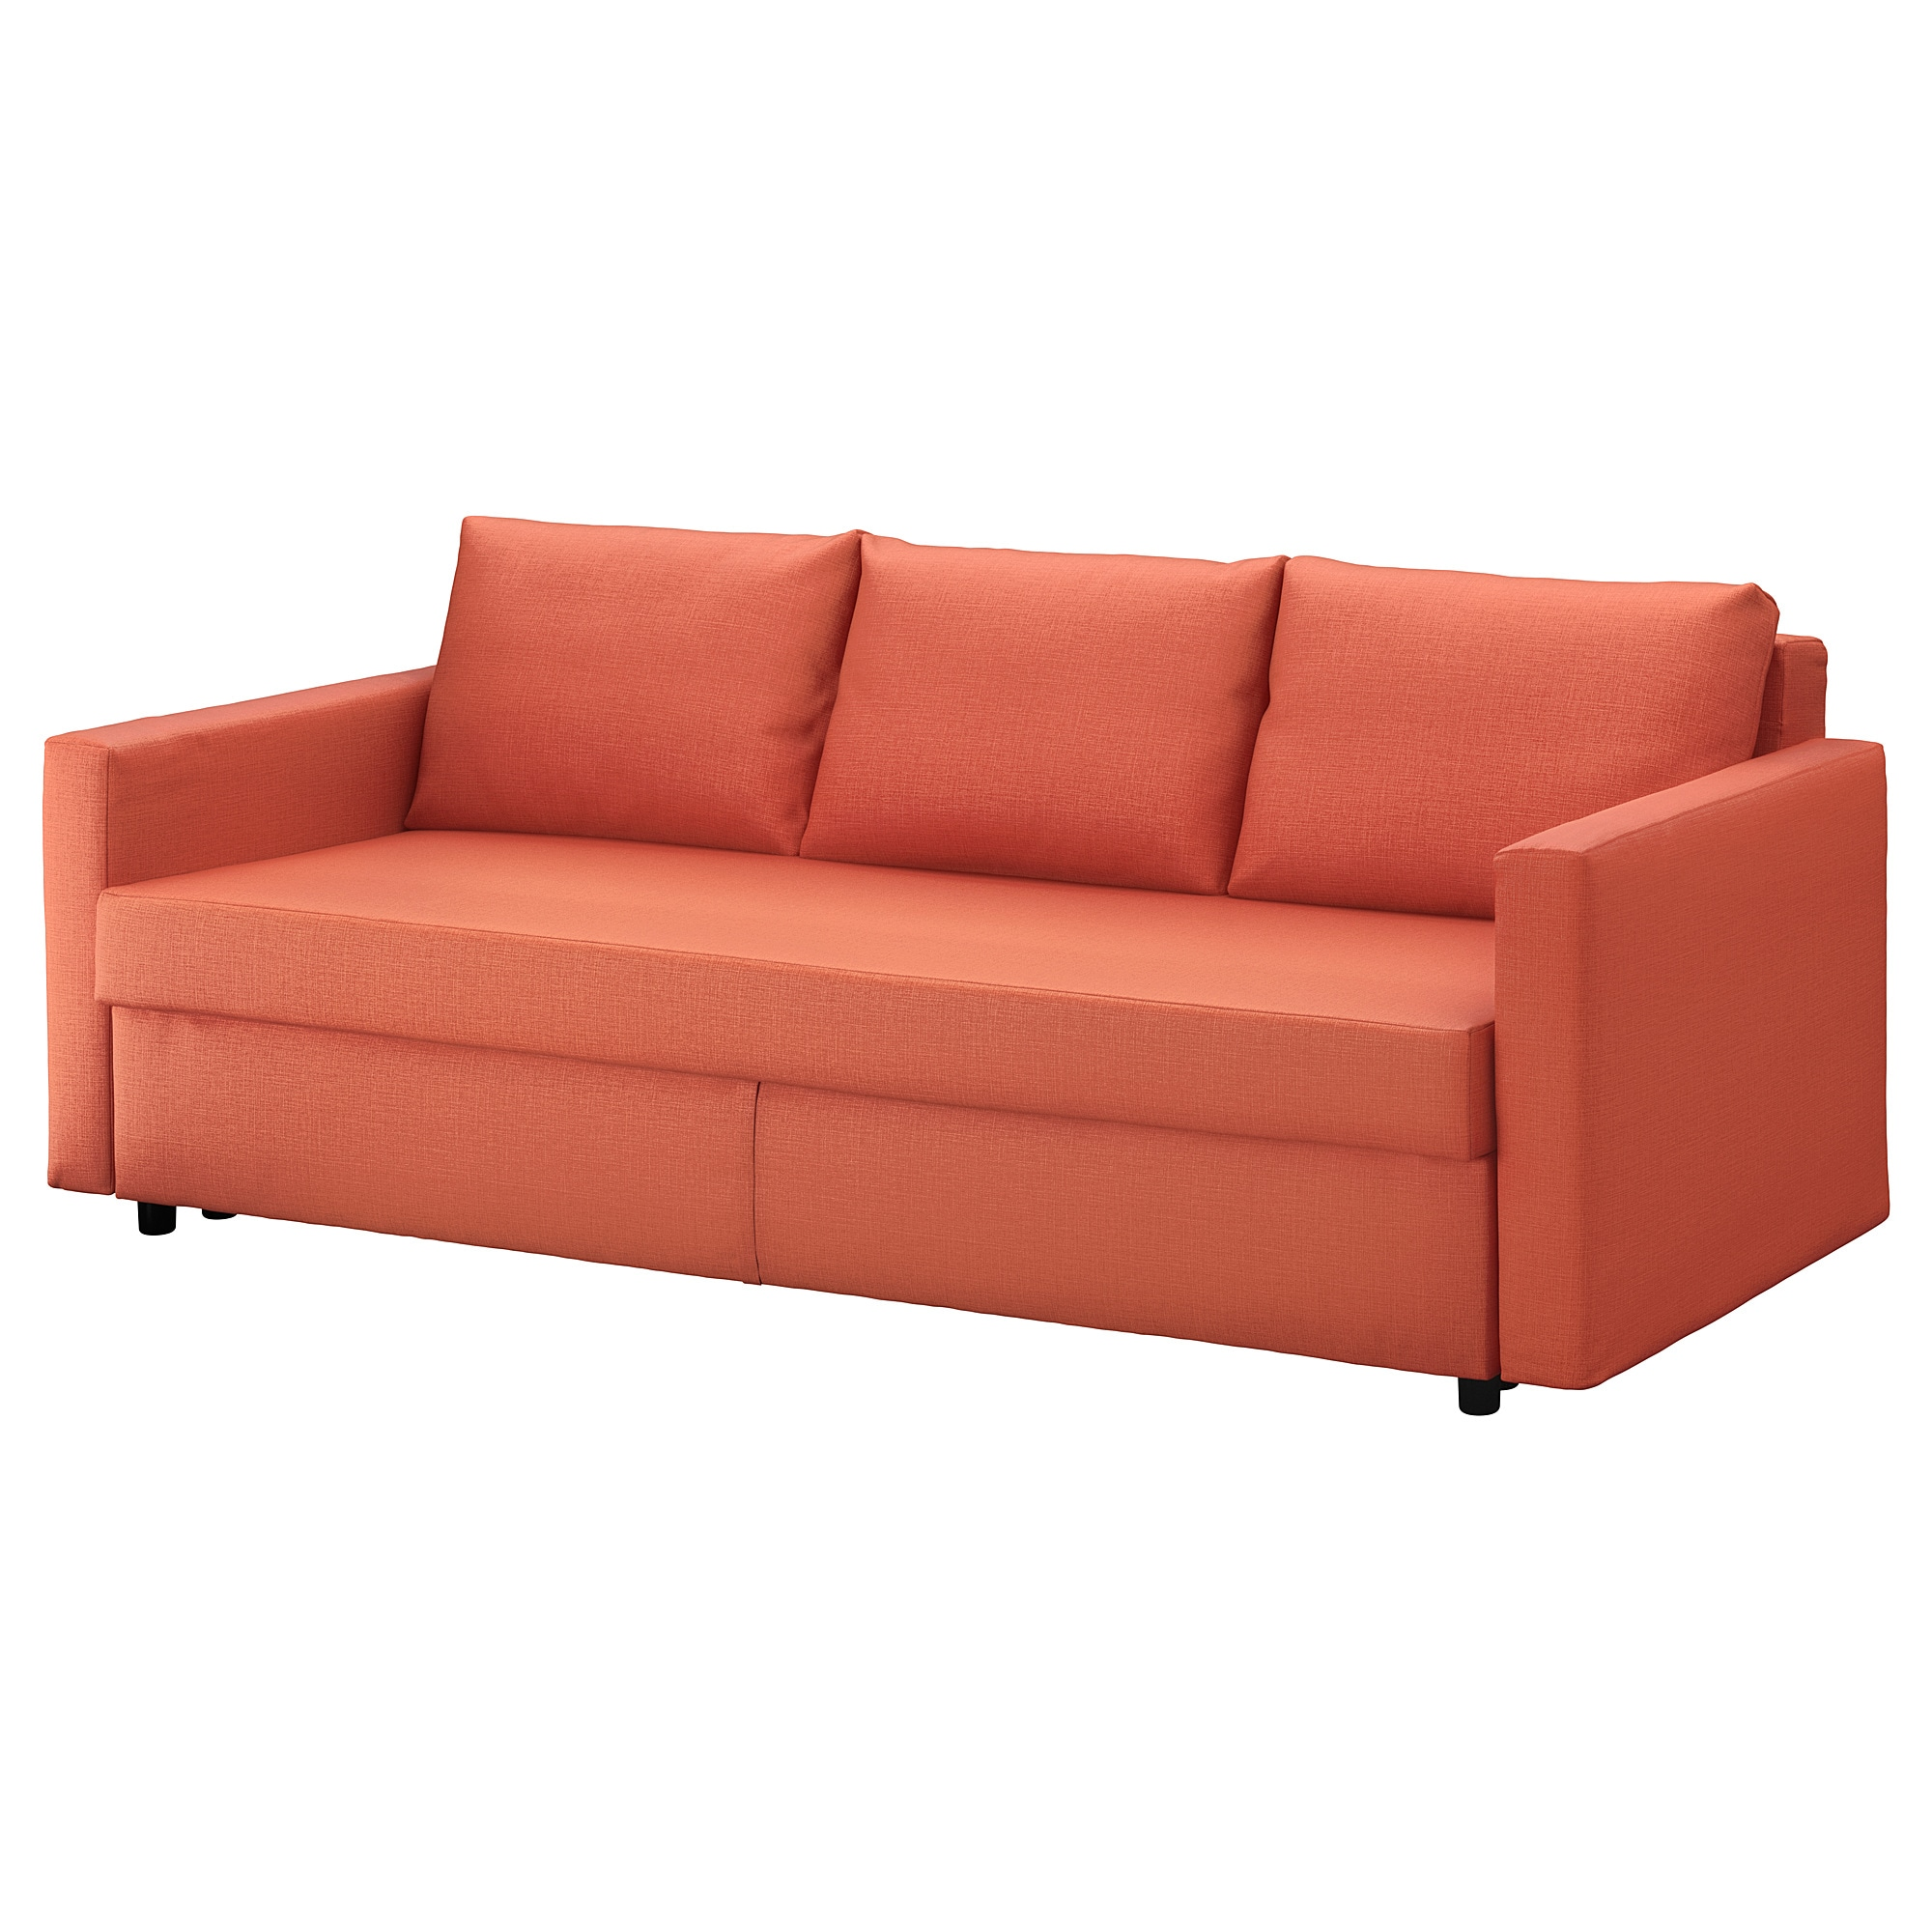 FRIHETEN Sleeper sofa Skiftebo dark orange IKEA